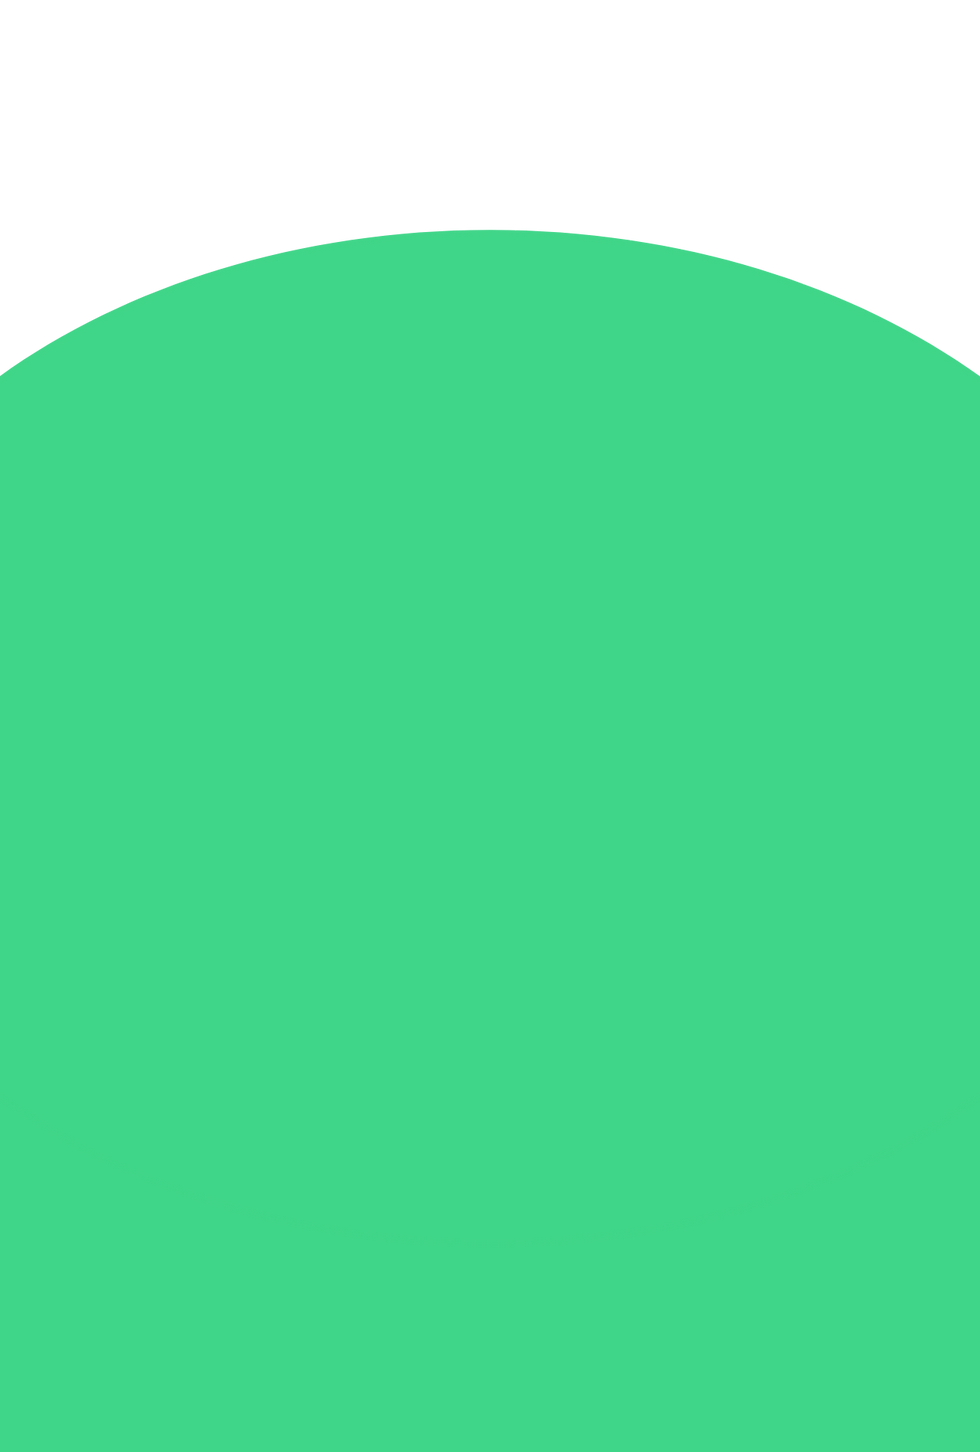 Greenbackground.png